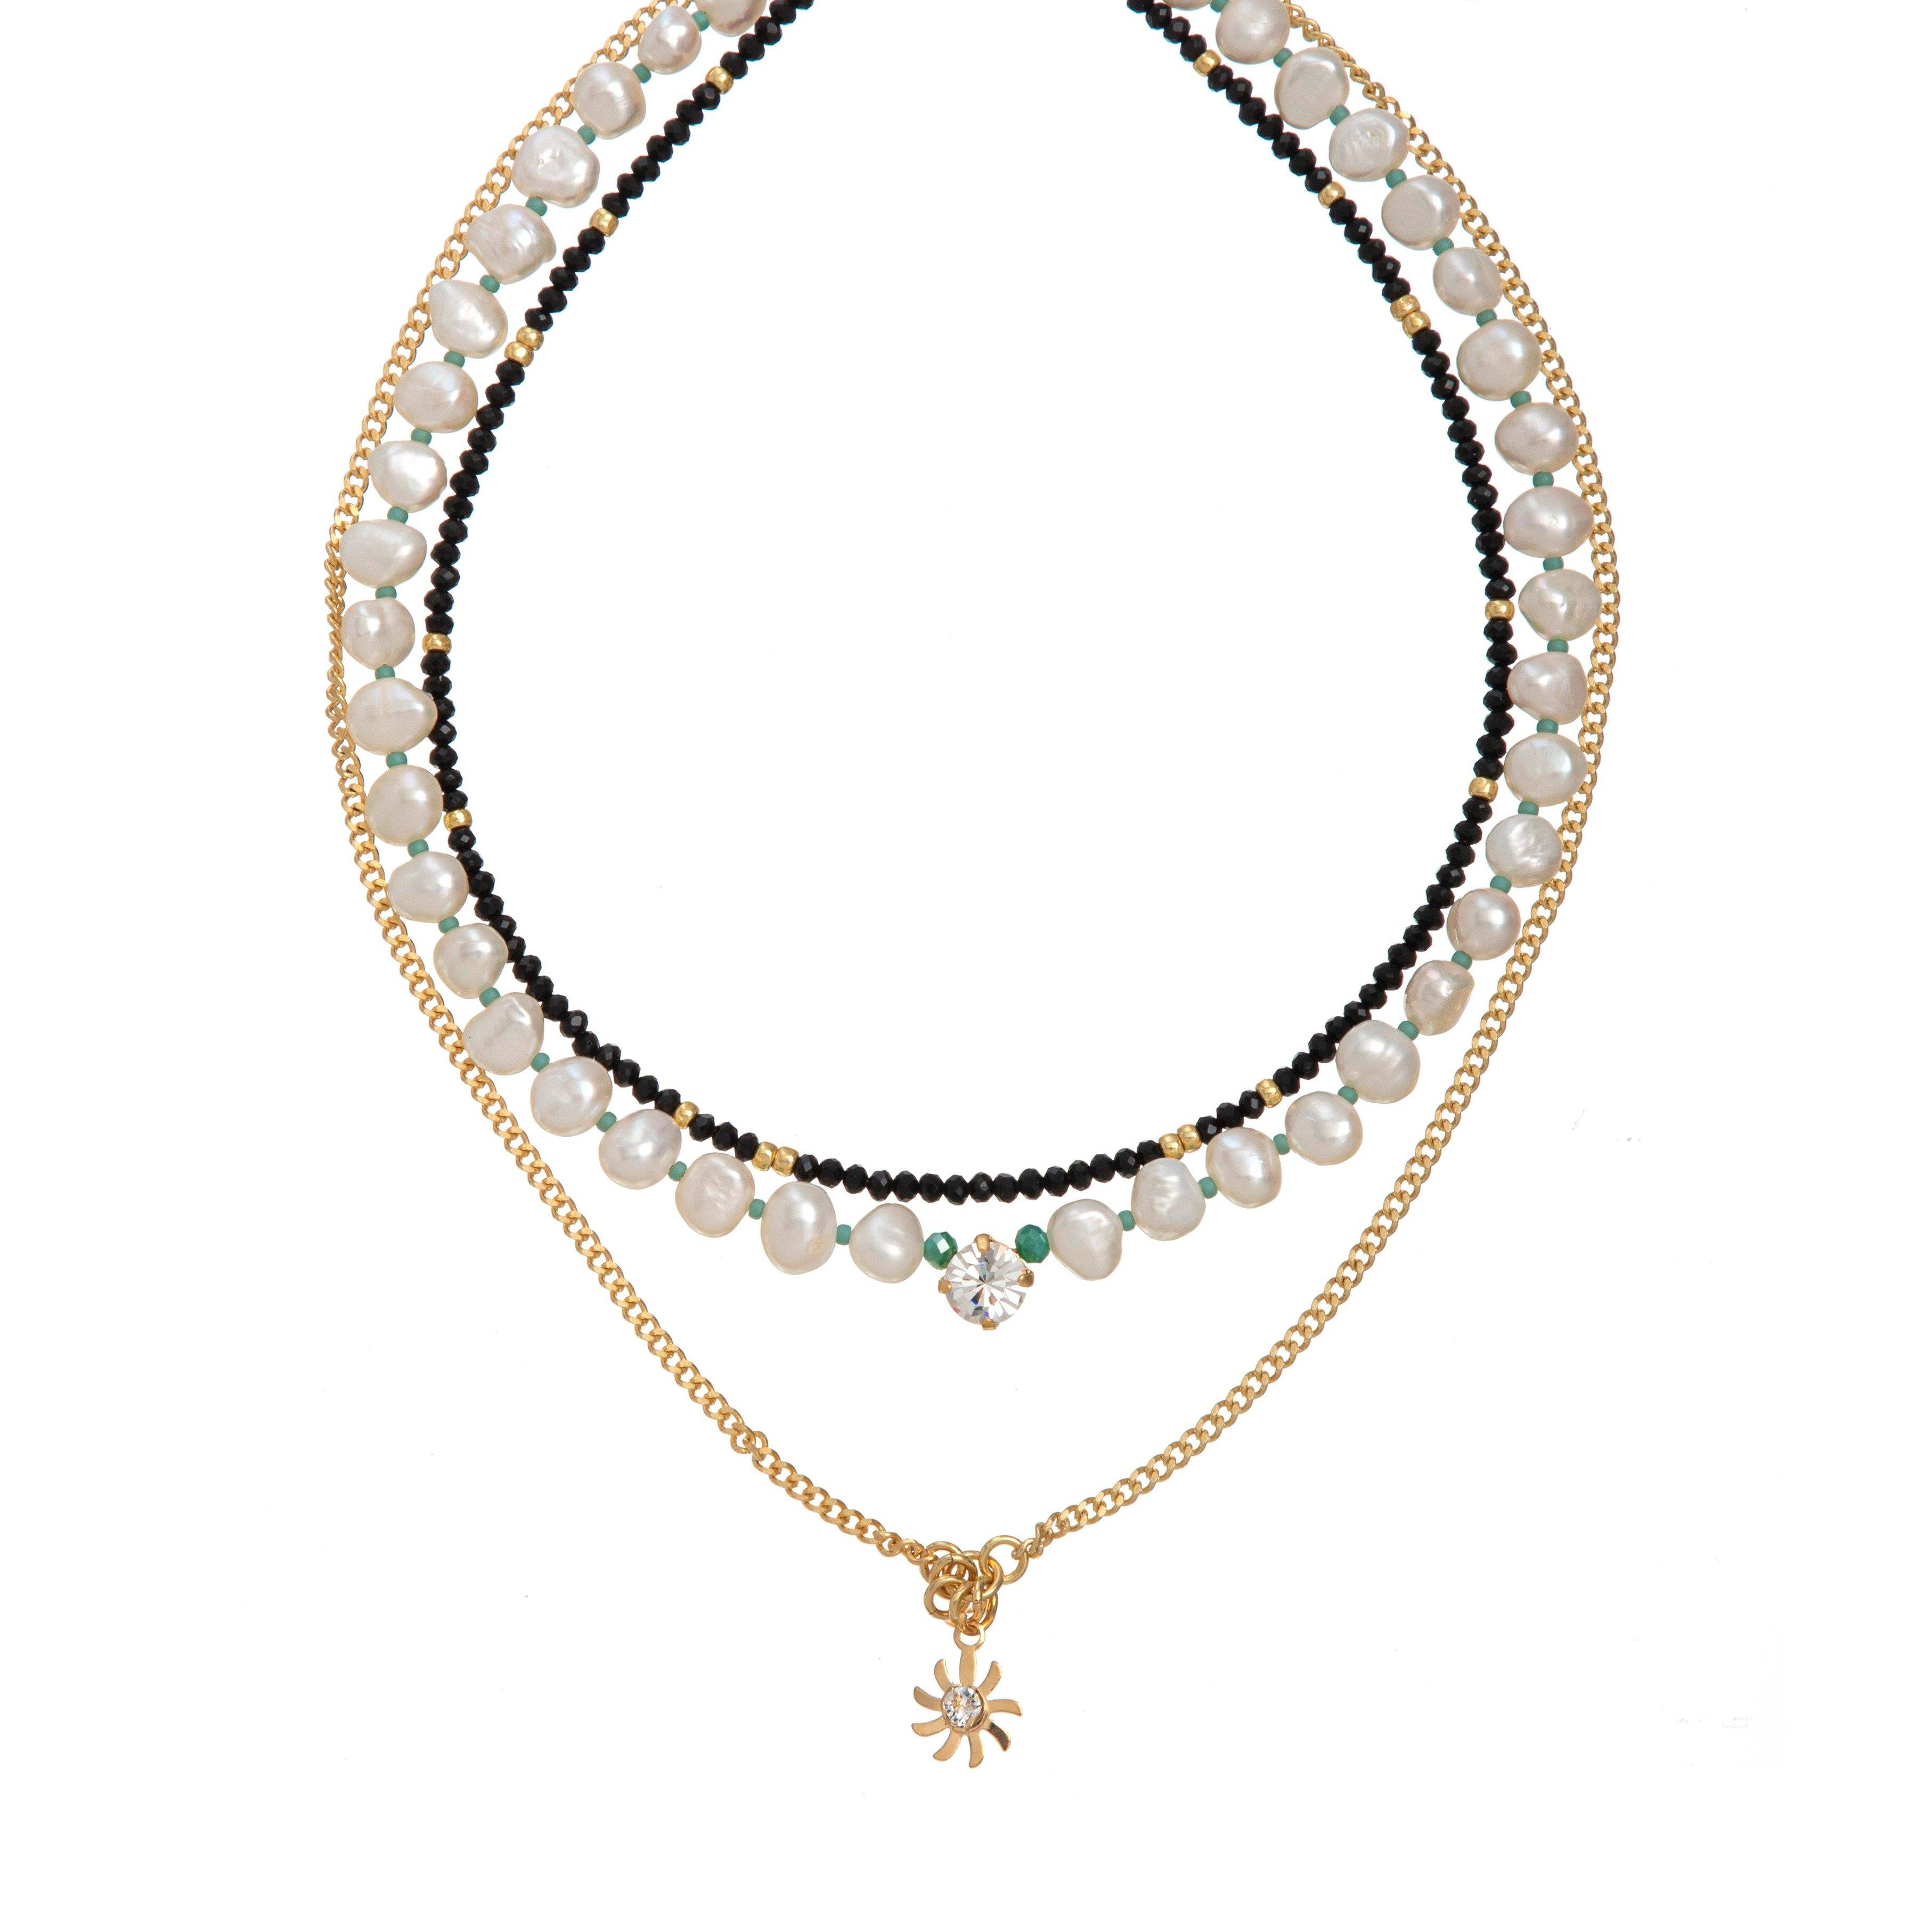 London White Necklace - Black